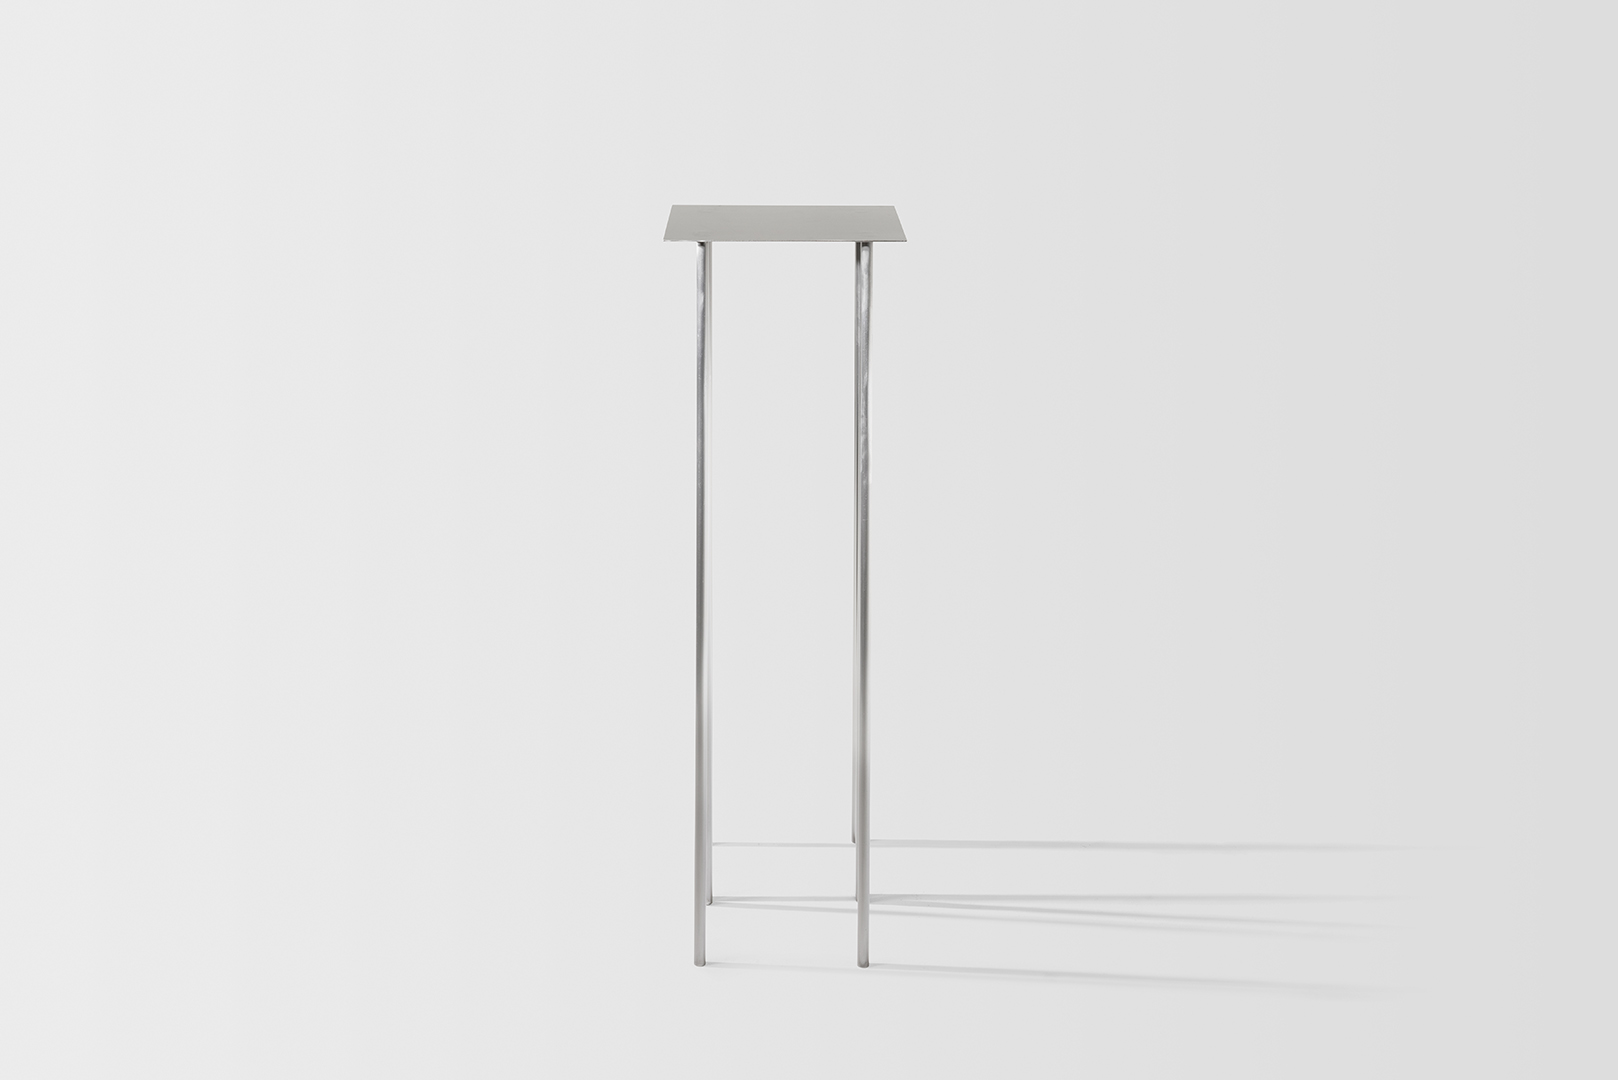 2018_PaperTable_Perspective_White_15.jpg